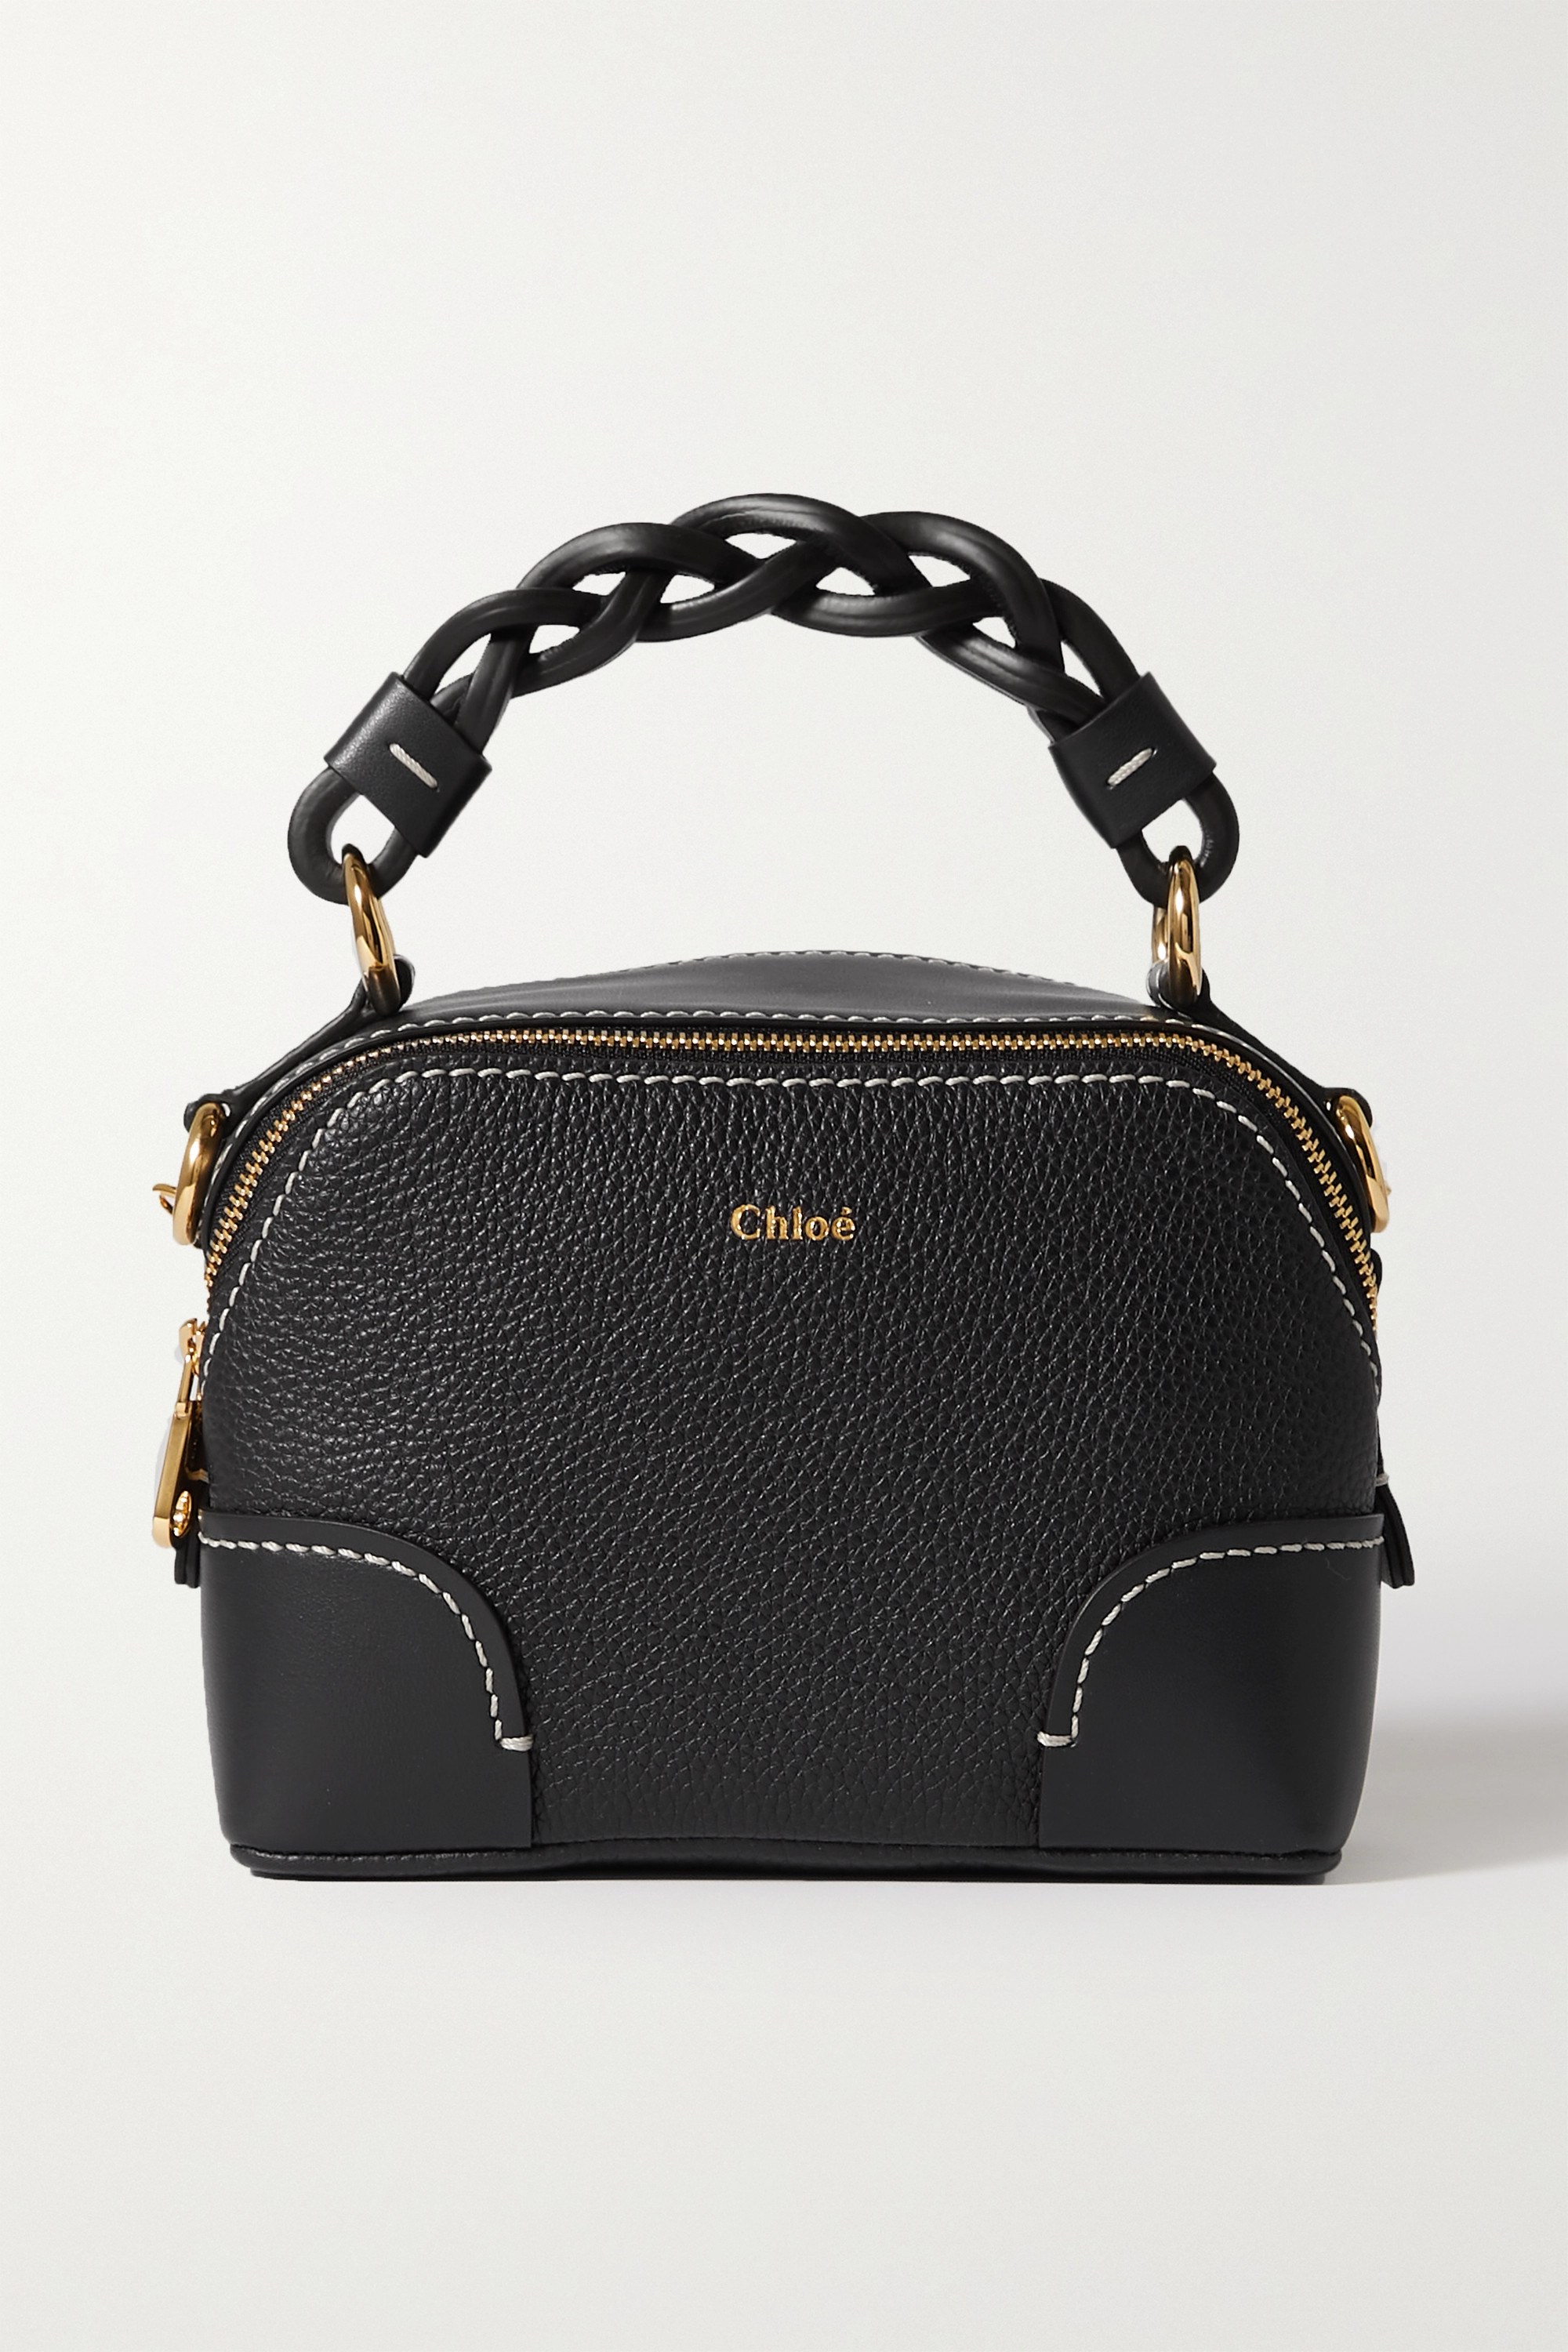 Chloé - Daria mini textured and smooth leather tote